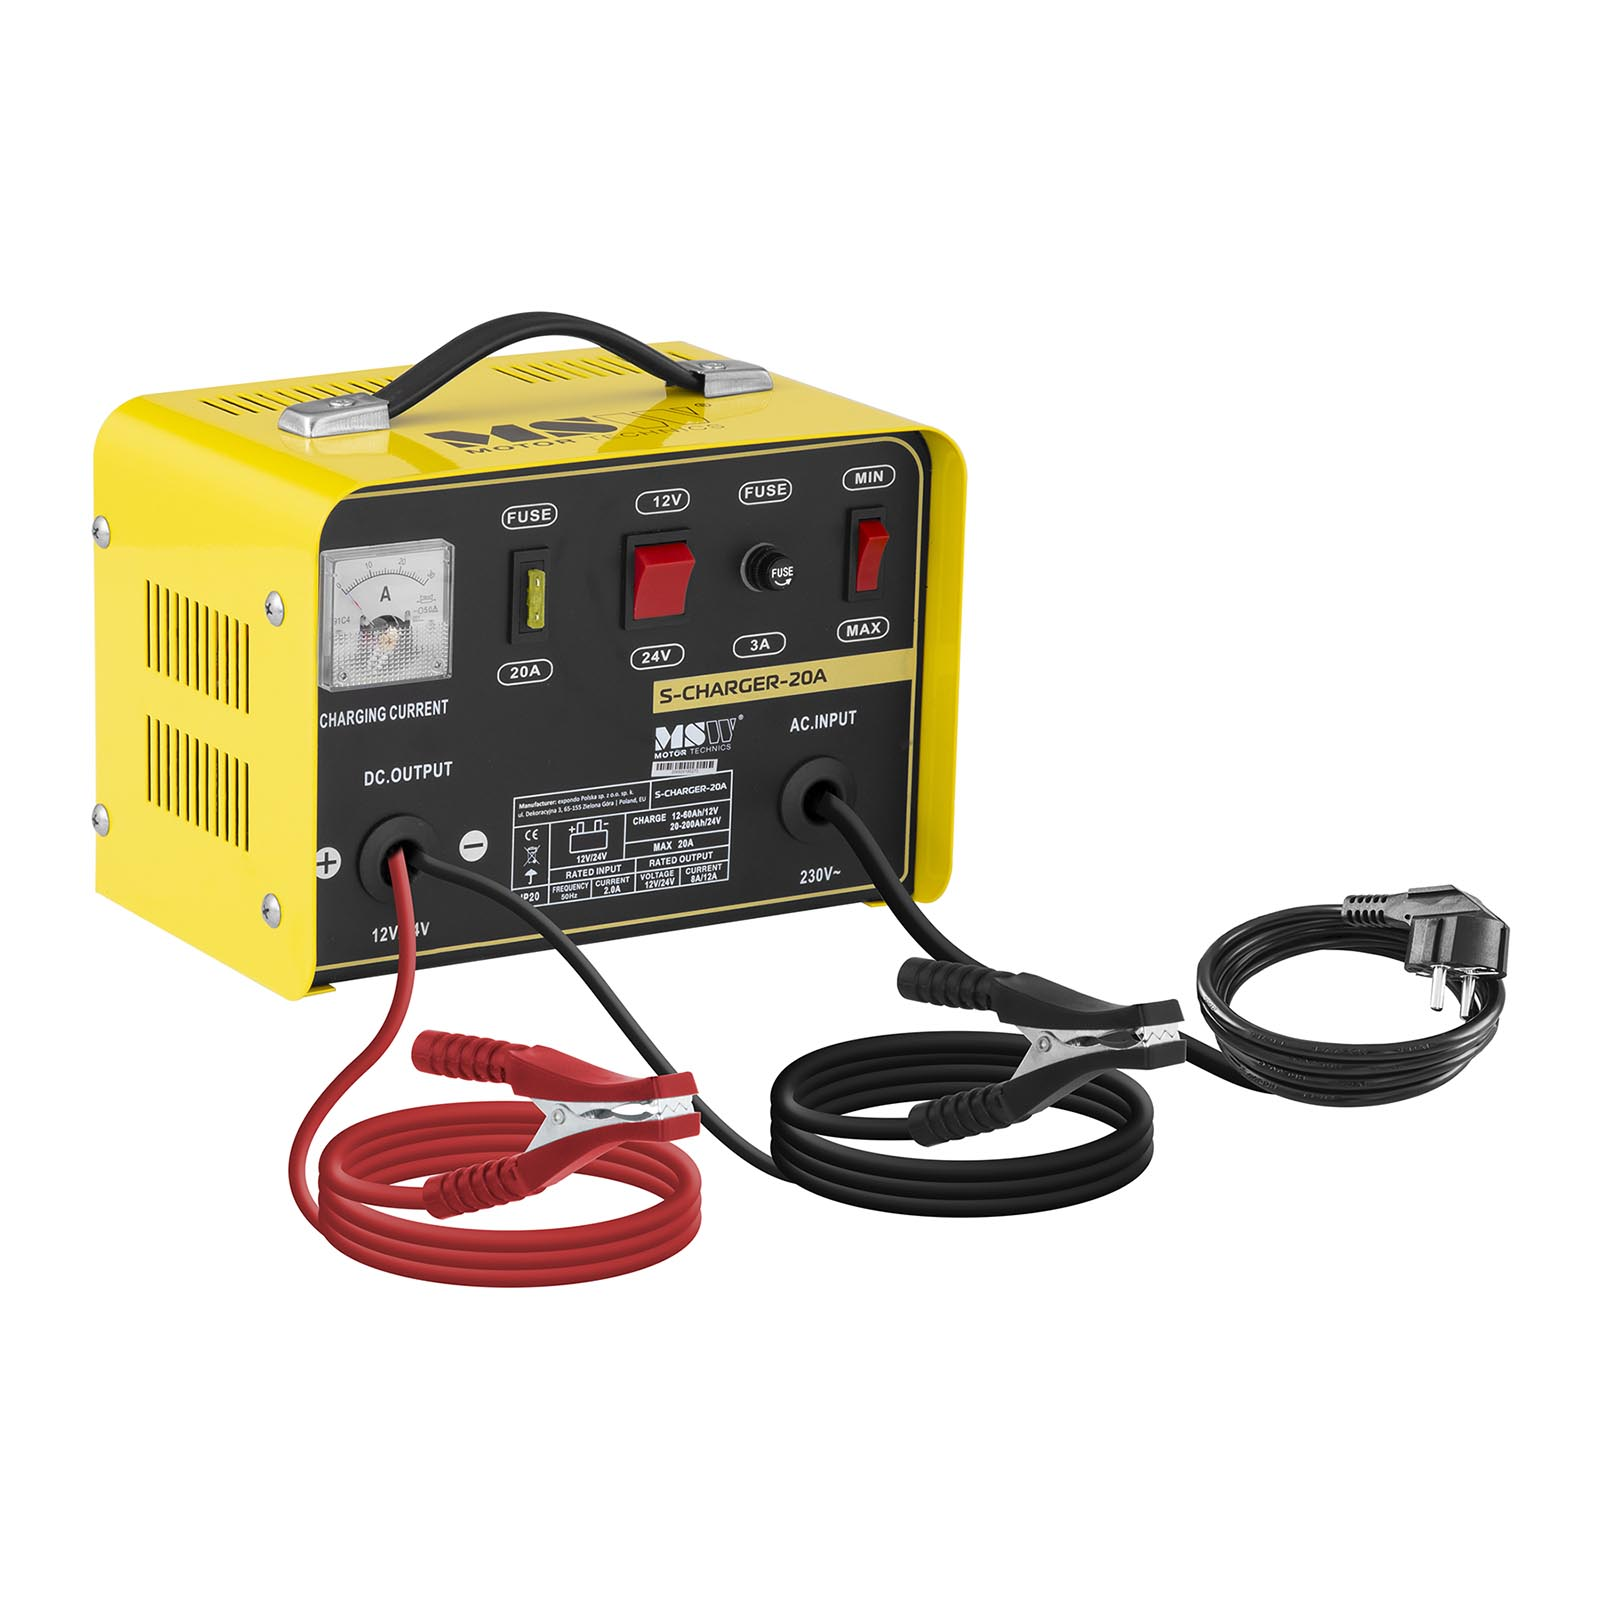 MSW Autobatterie-Ladegerät - 12/24 V - 8/12 A S-CHARGER-20A